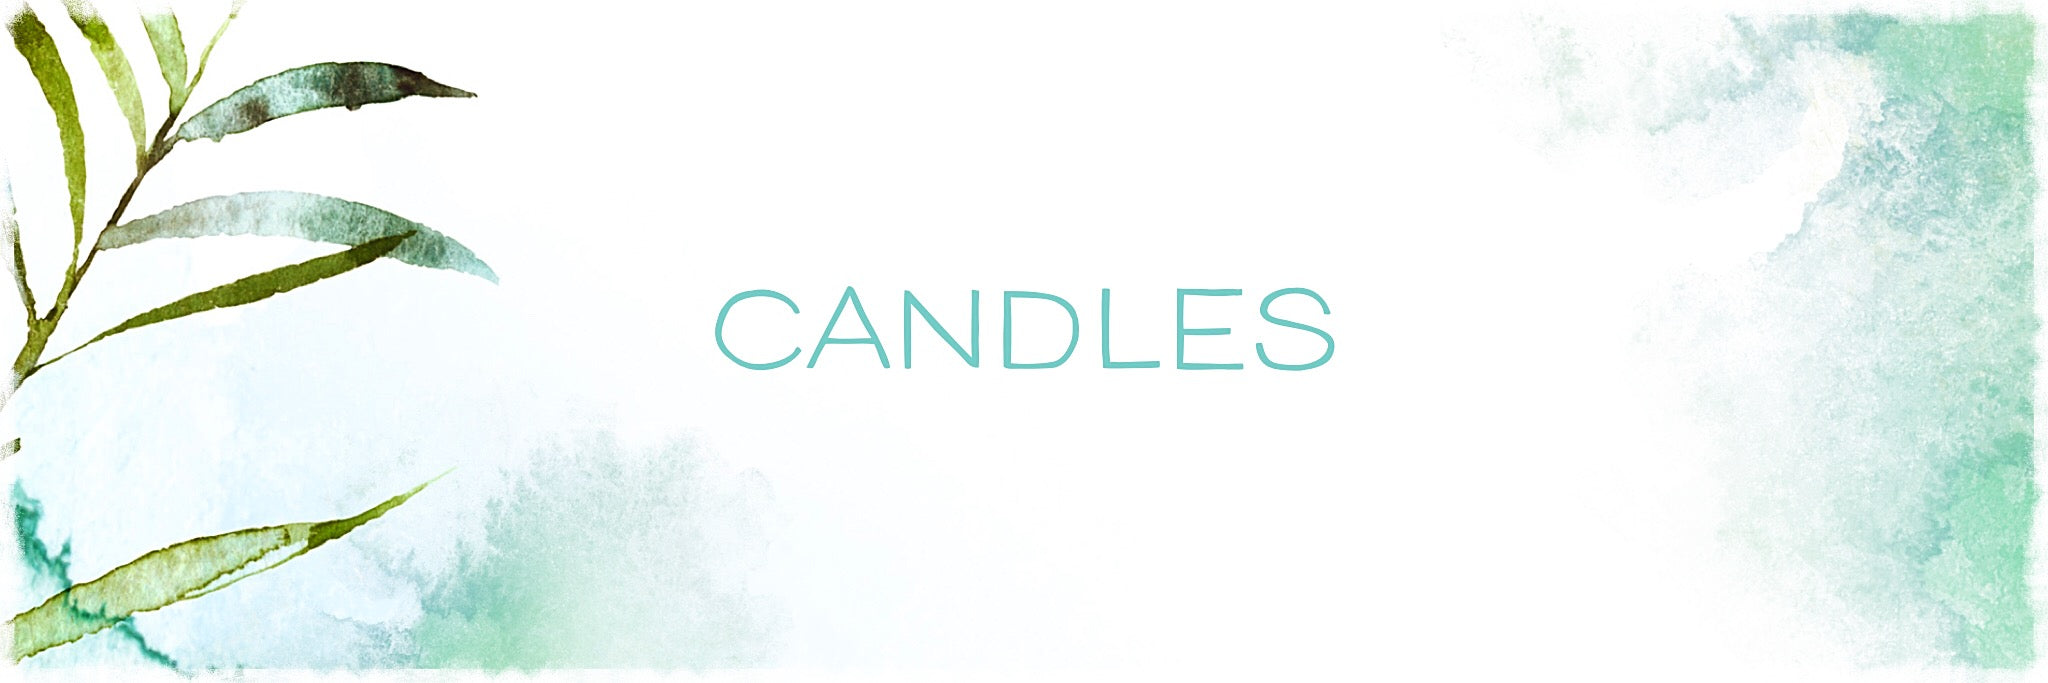 Candles-Soul Of The Rose www.souloftherose.com